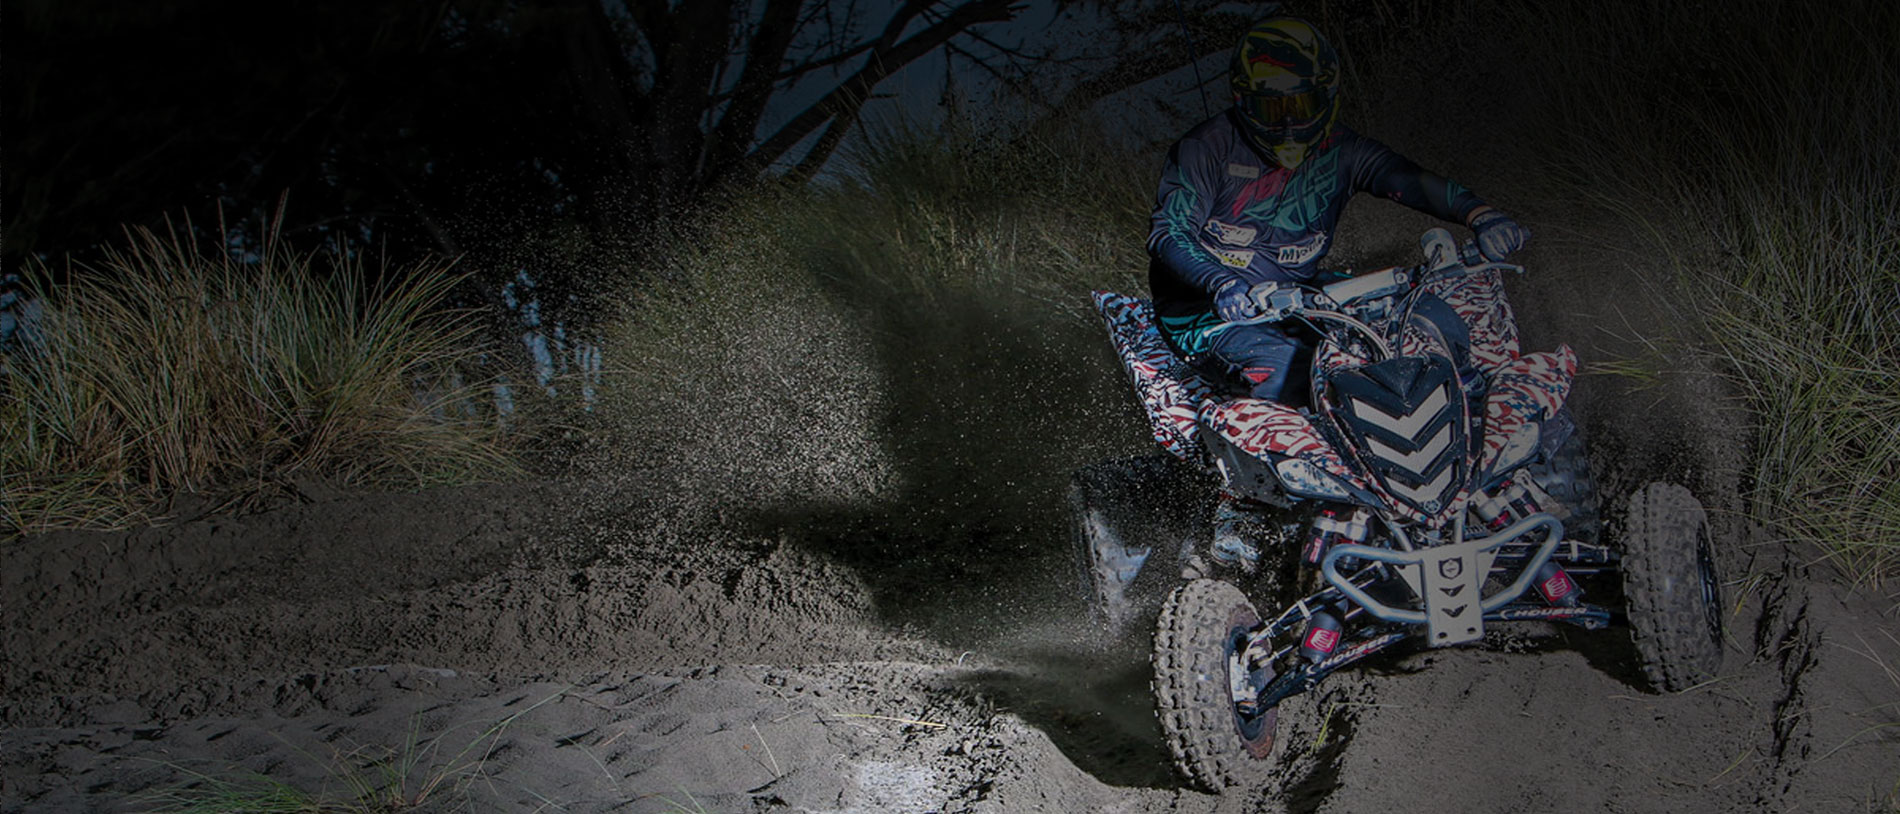 humboldt-county-motorsports-atv-motocross-motorycle-side-by-side